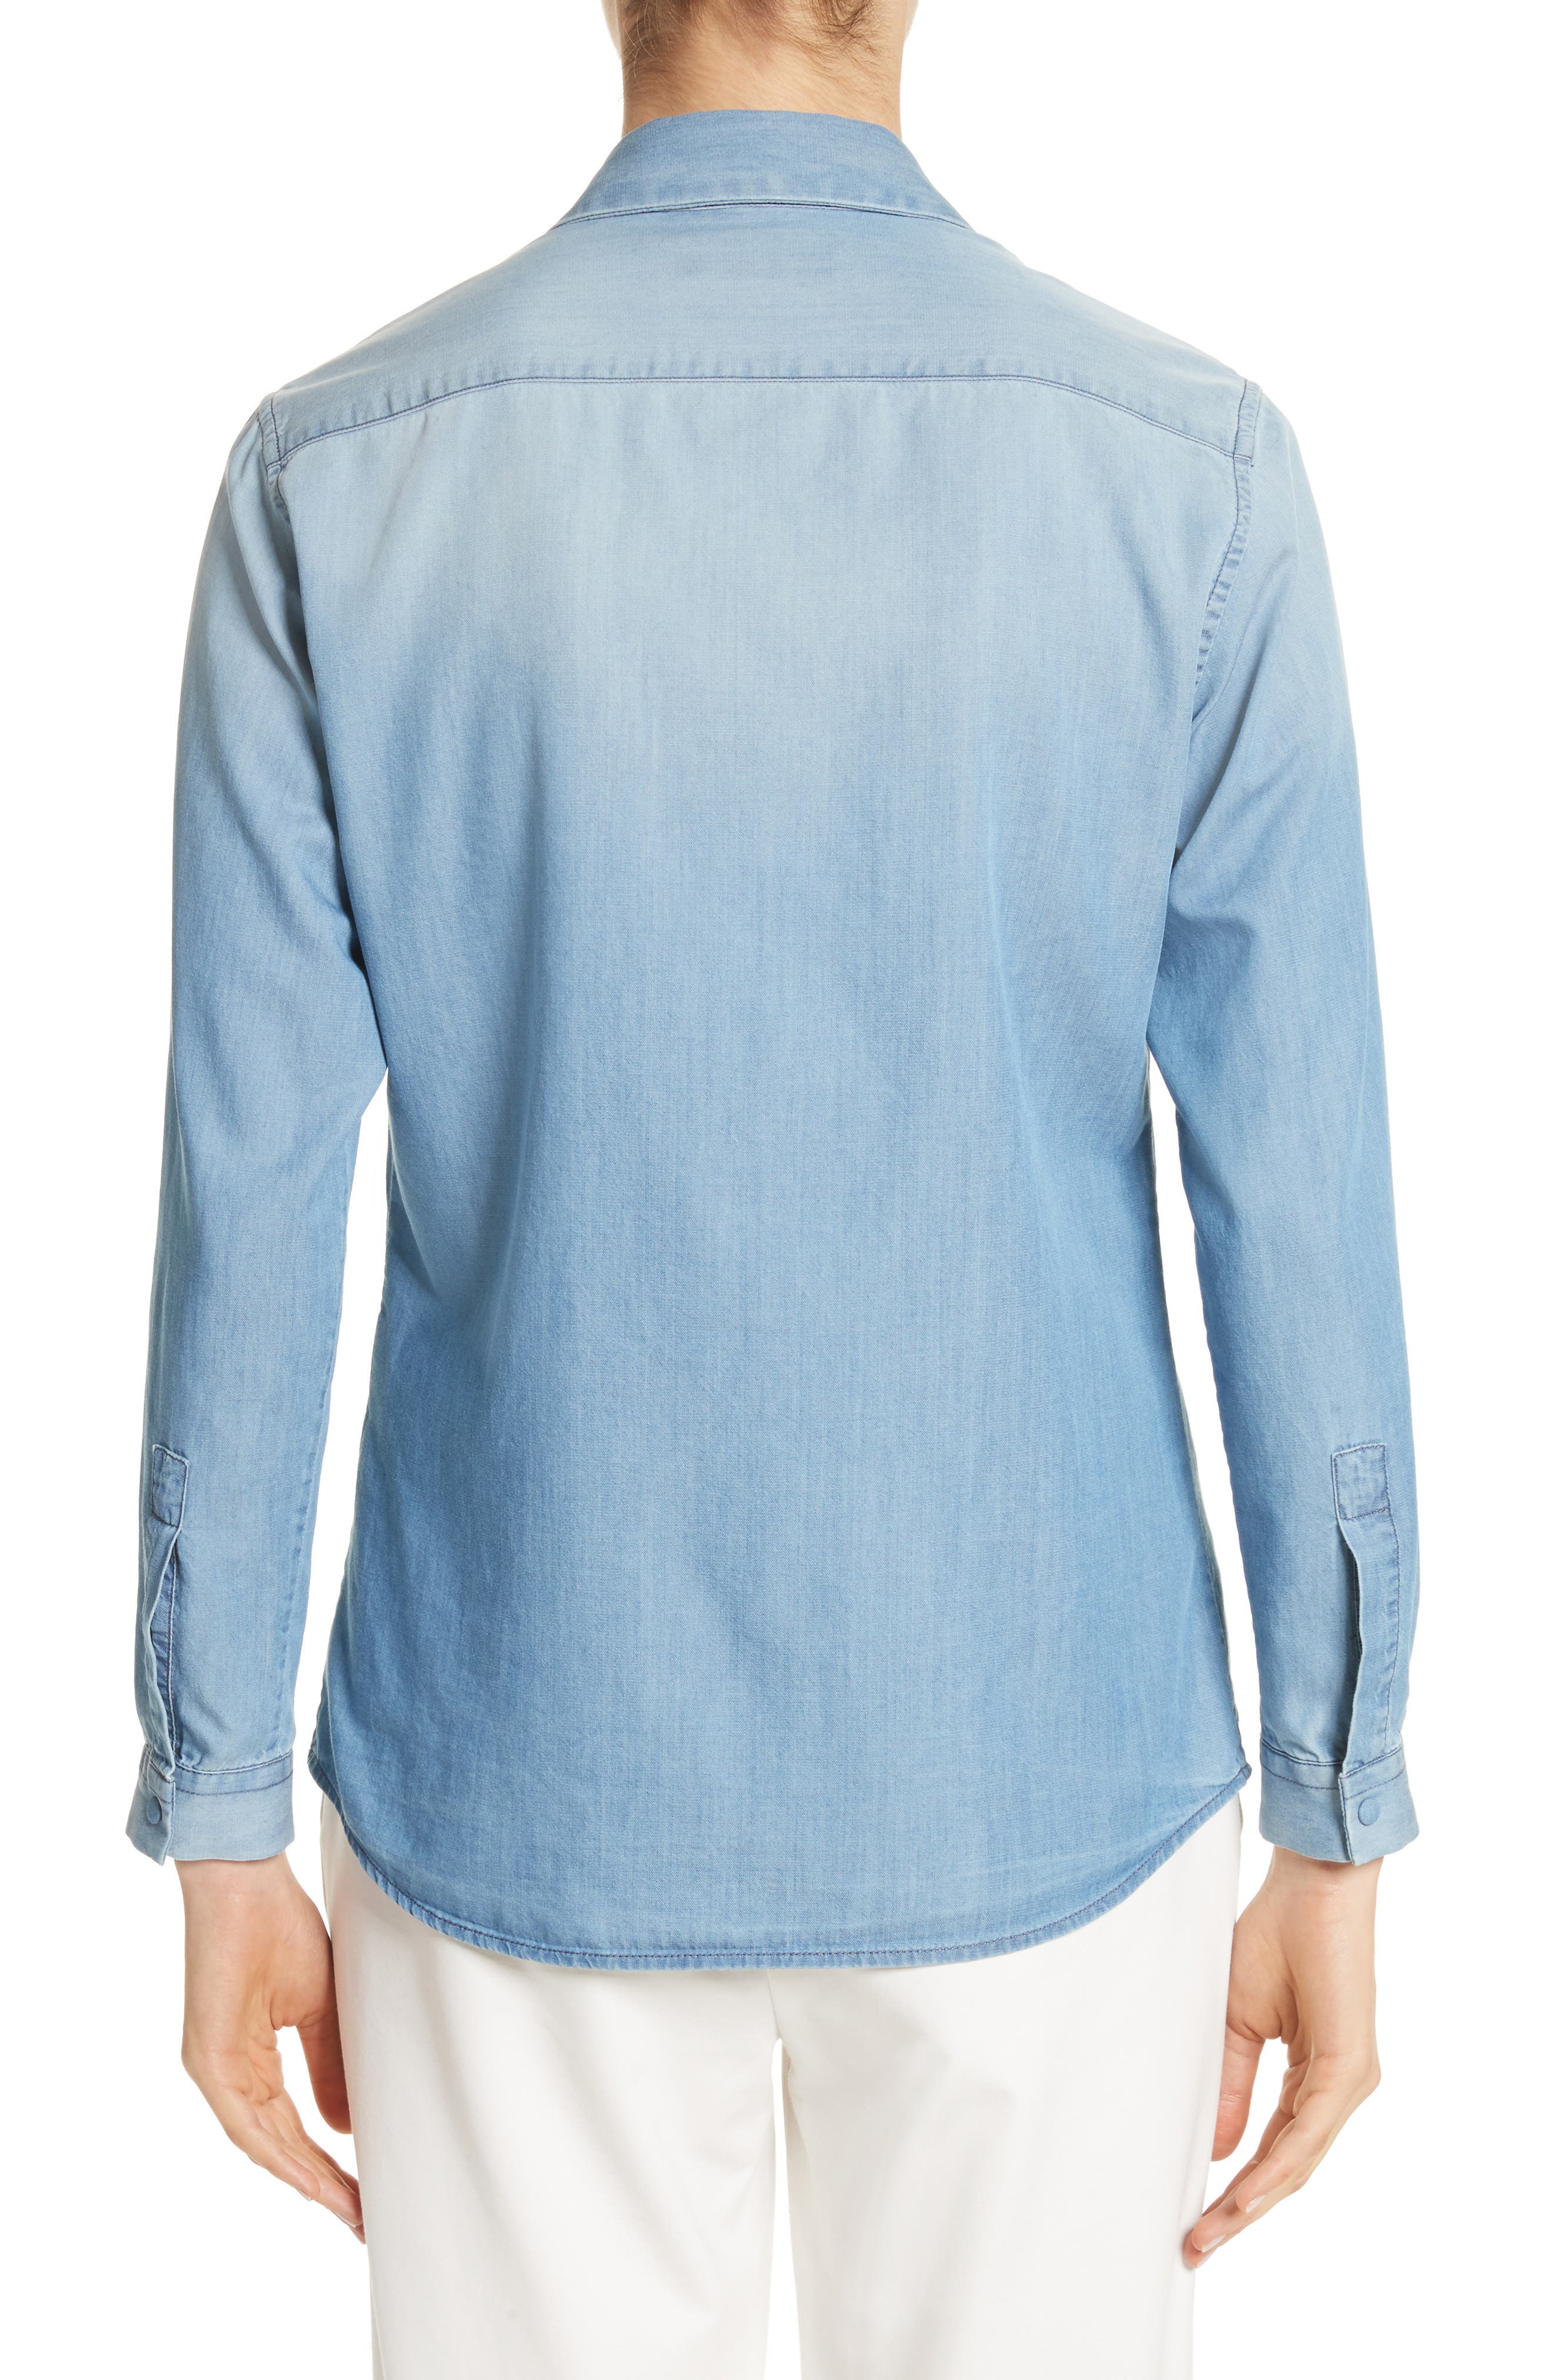 Cotton & Cashmere Chambray Blouse,                             Alternate thumbnail 2, color,                             Denim Blue